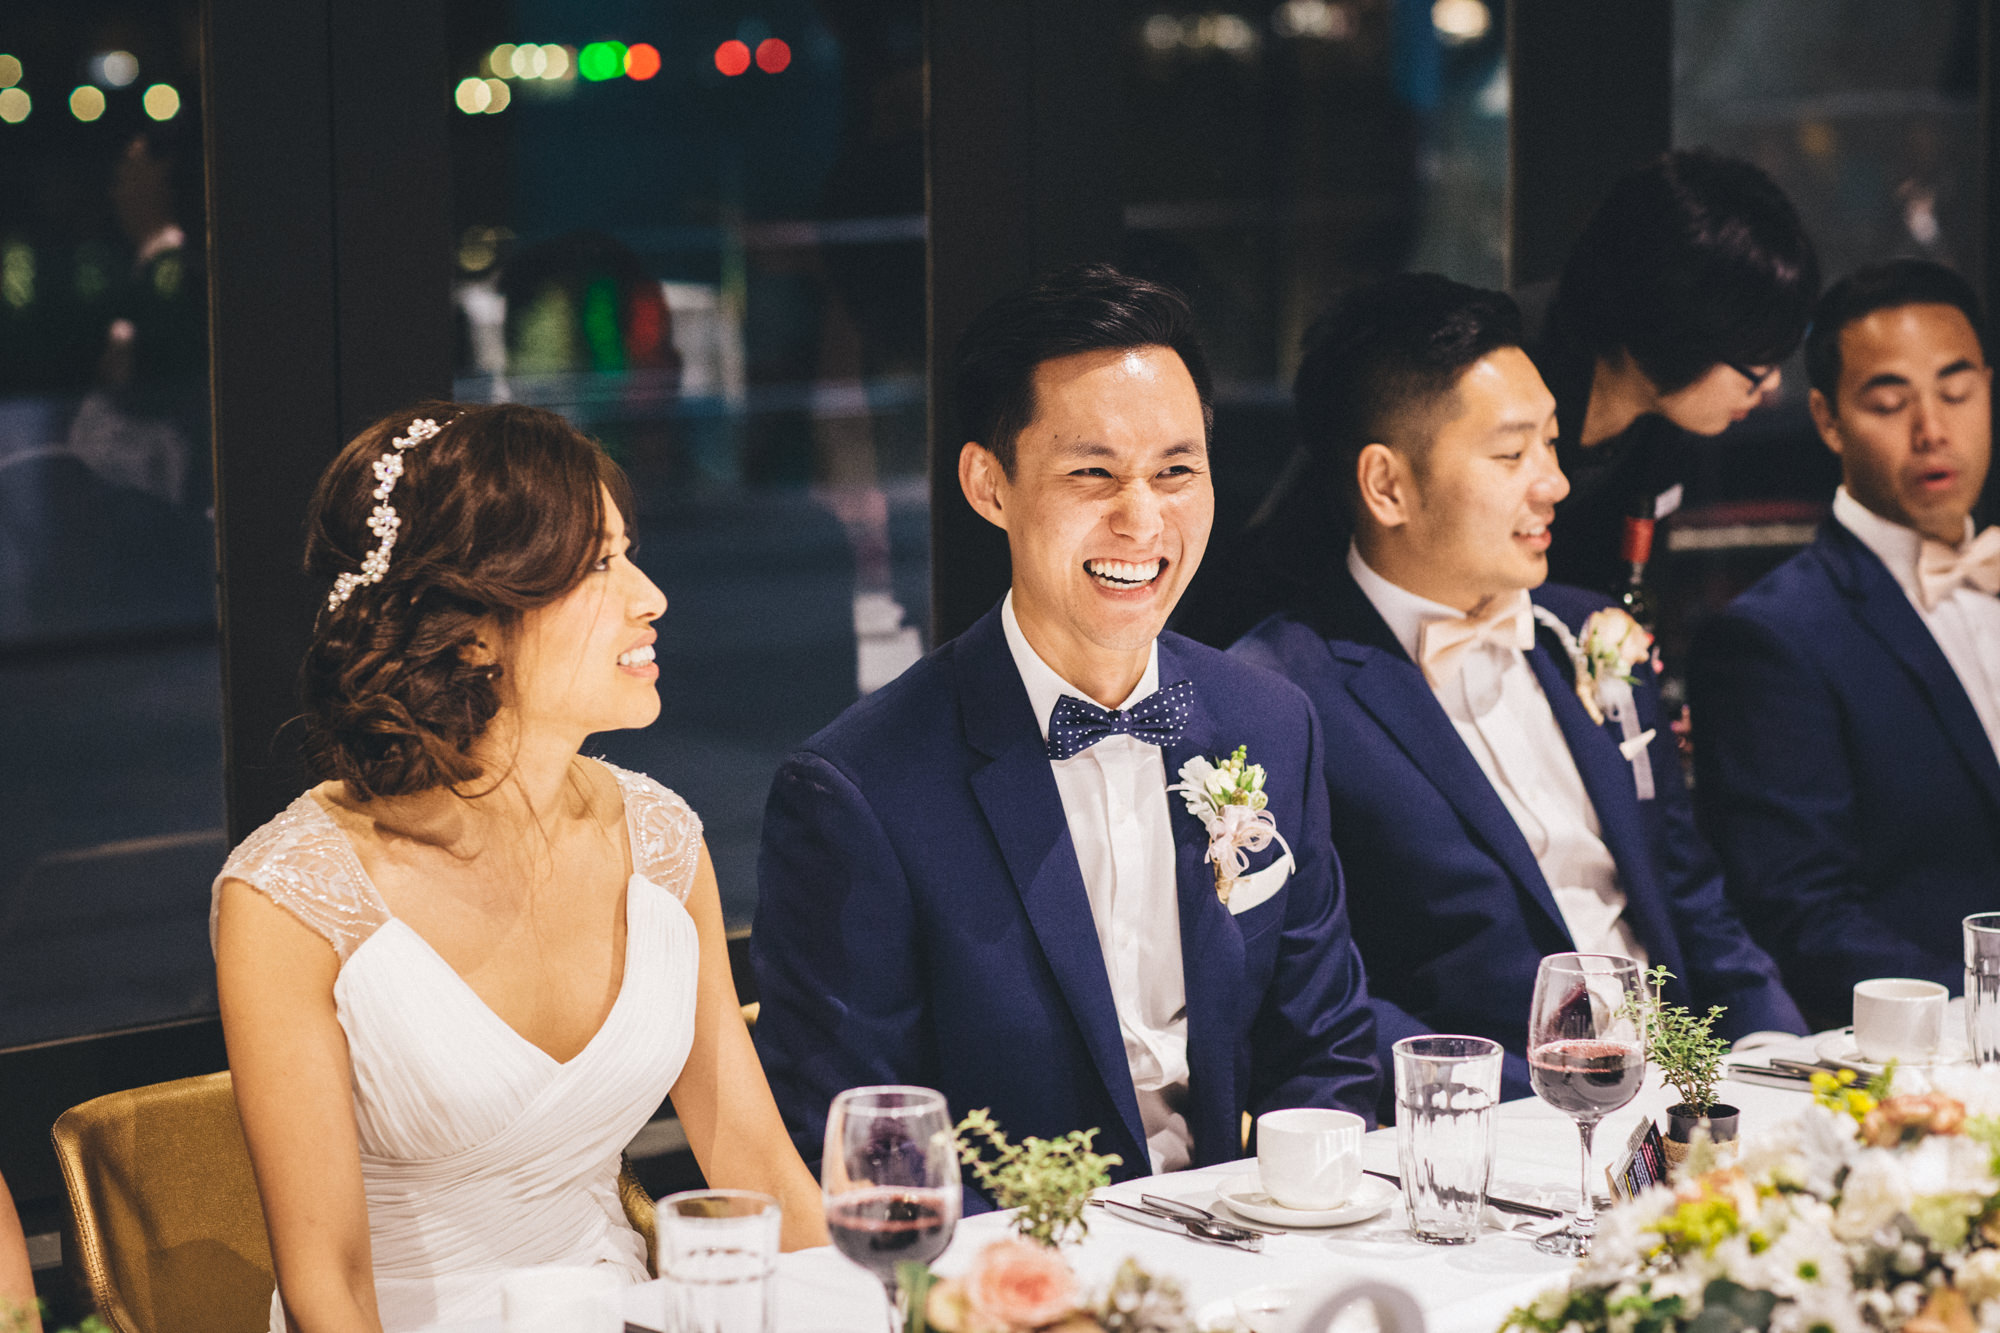 Allee & Rob - Singapore Wedding Photography (47 of 60).jpg